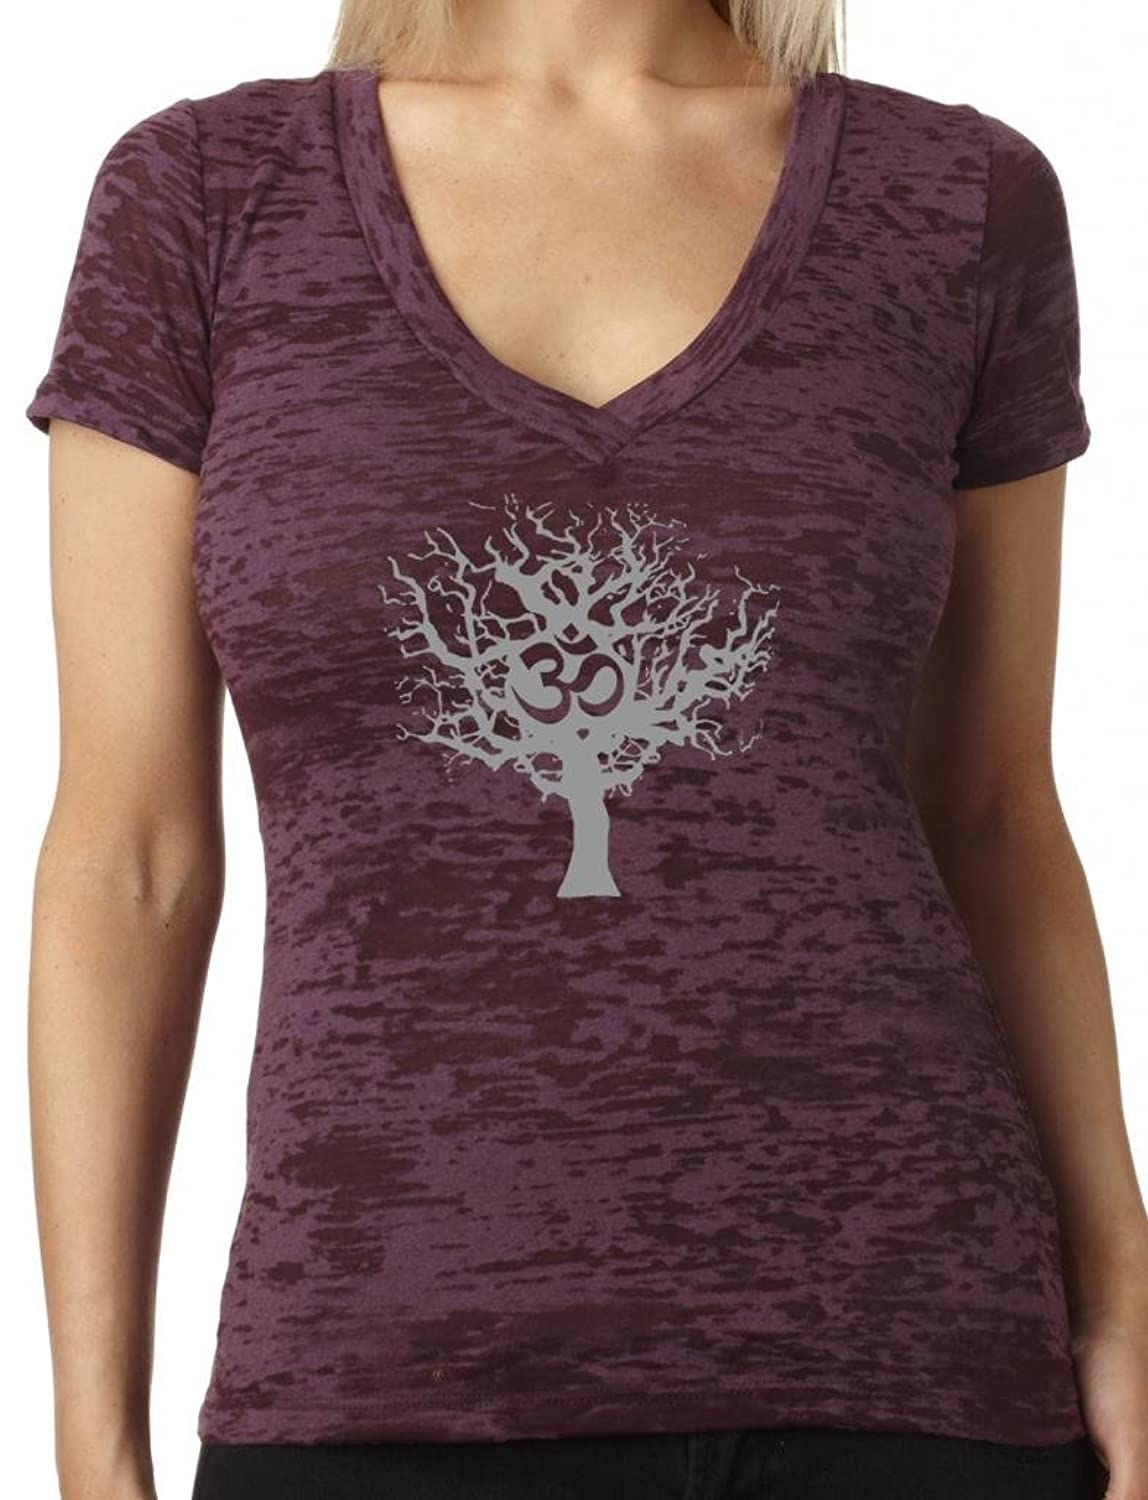 Yoga Clothing For You Ladies Tree of Life Neon Tank Top